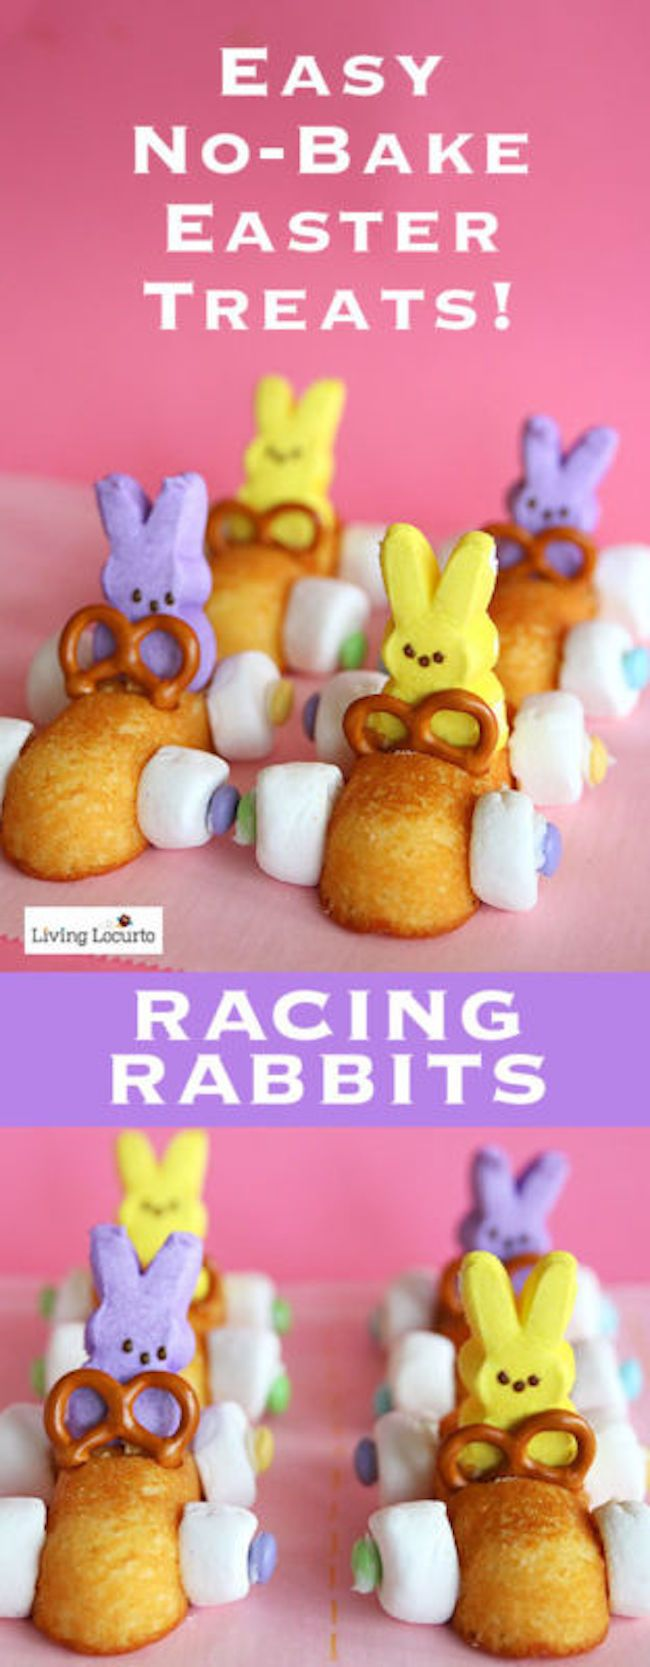 The 11 Best Easter Desserts - No Bake Racing Rabbits